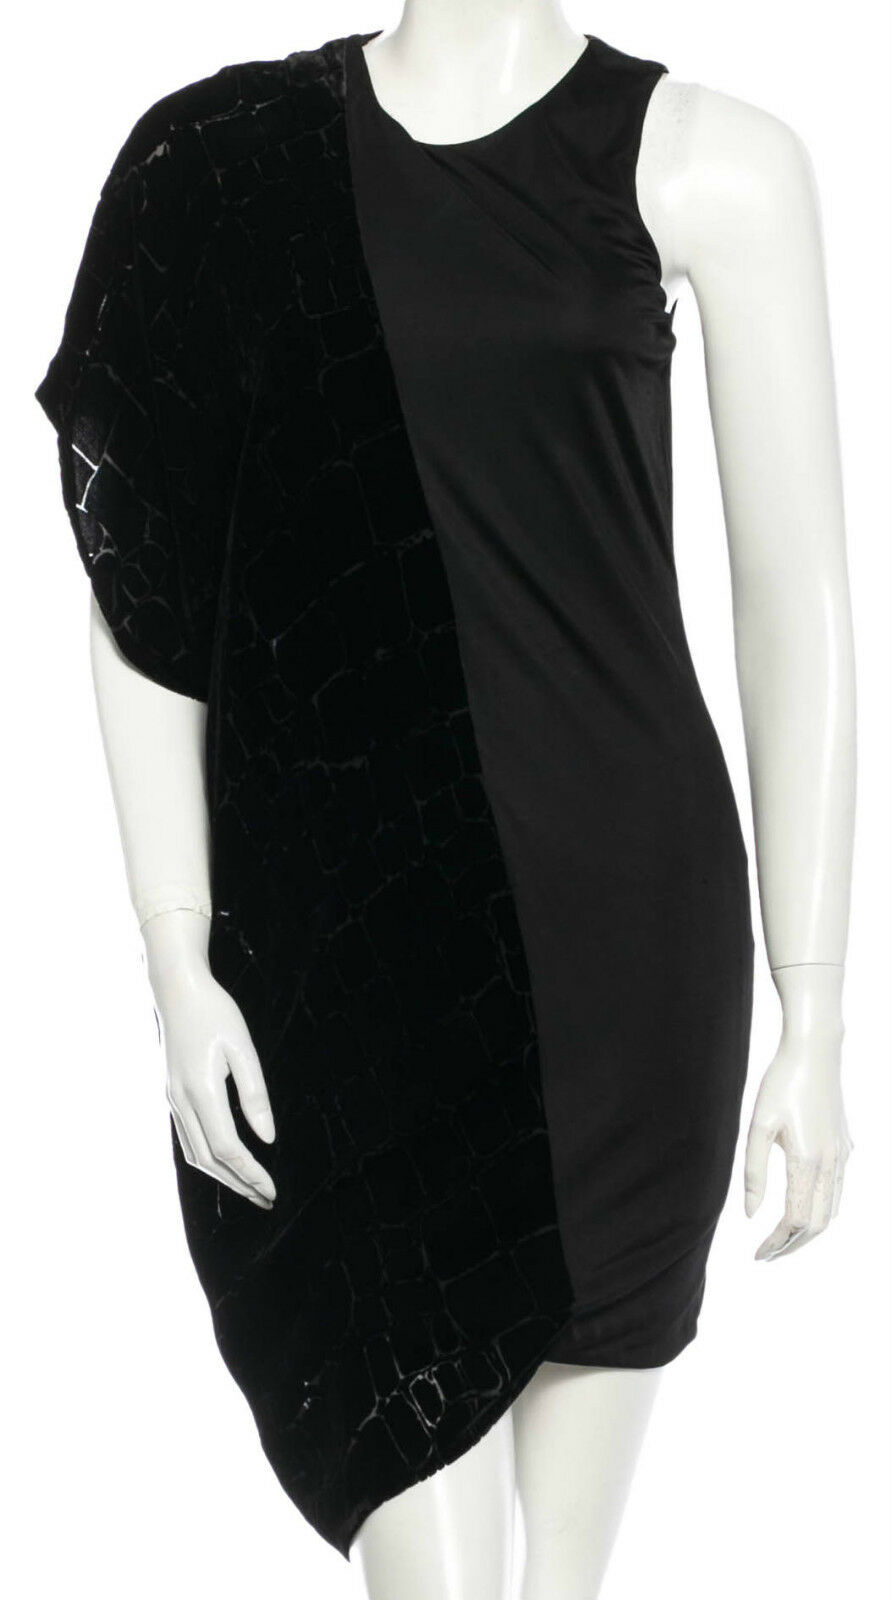 Alexander Wang Dress Dress SZ S - NWOT